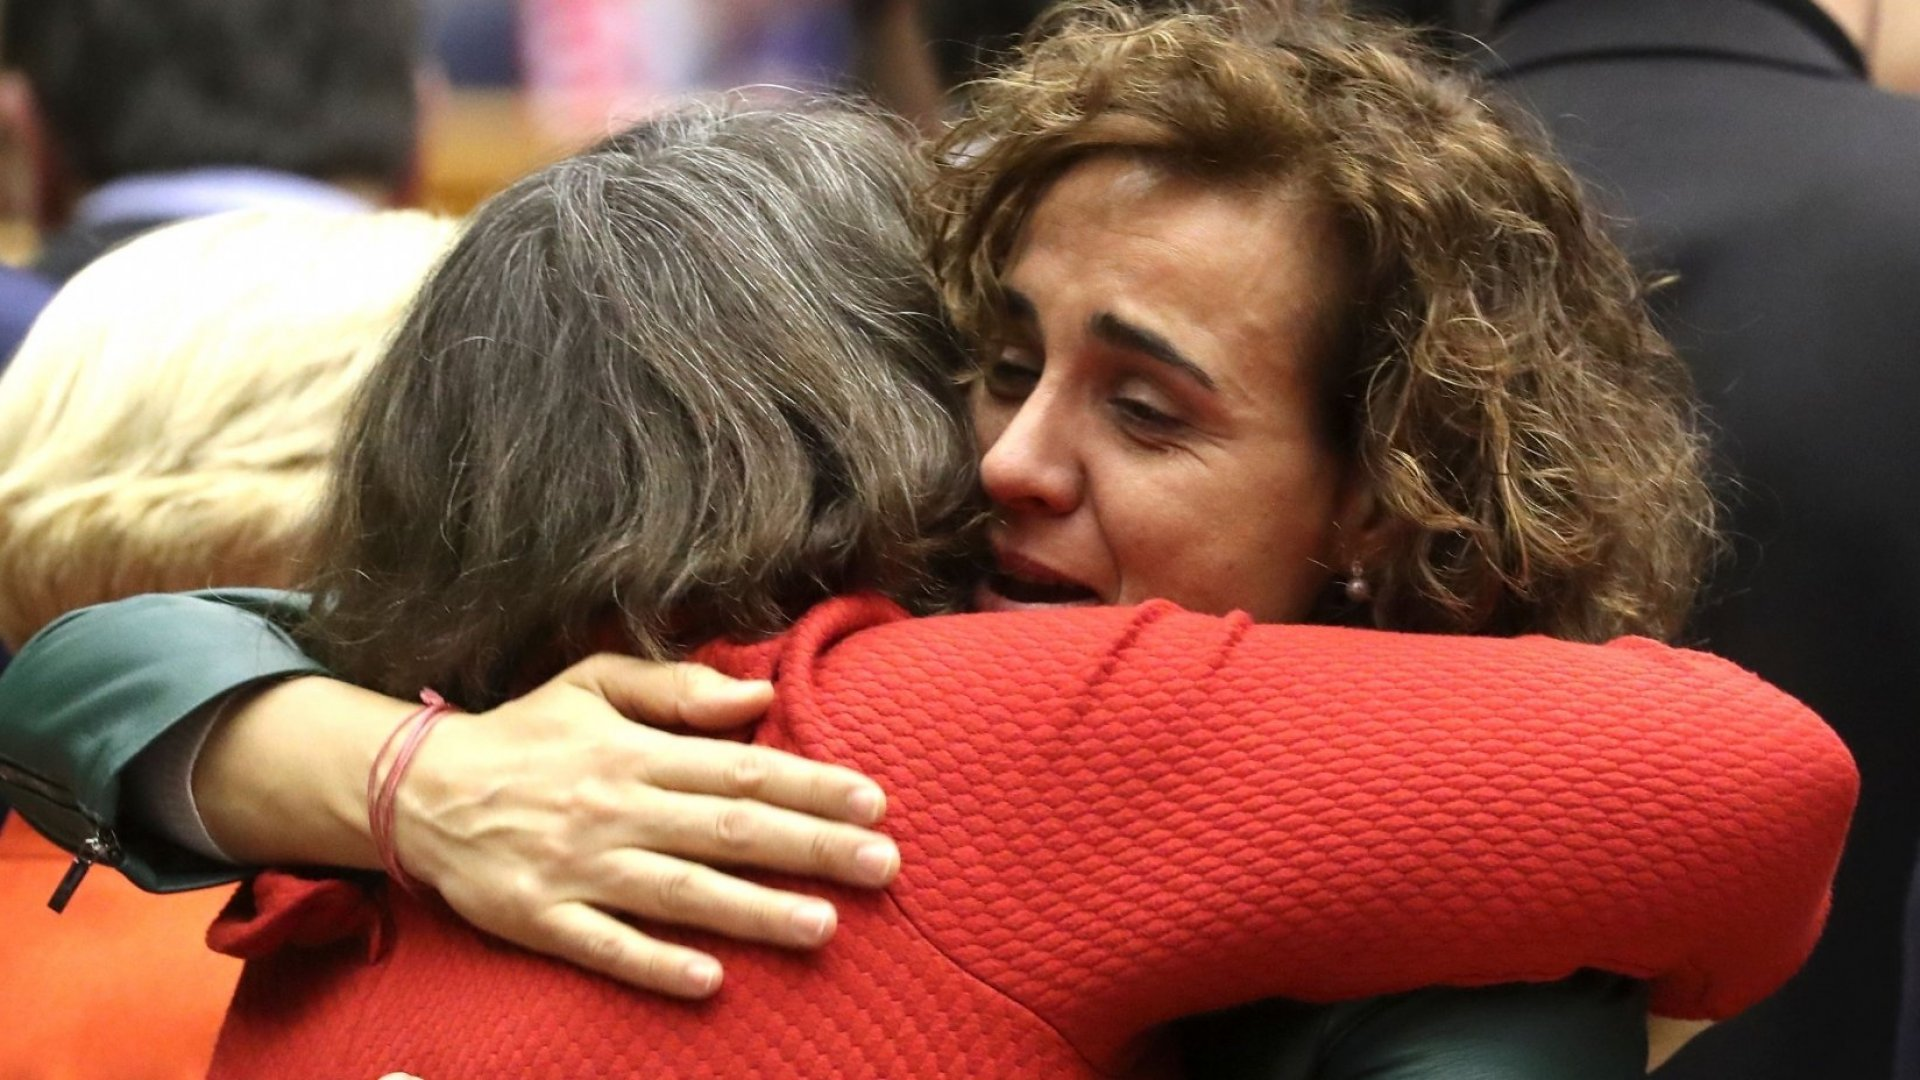 British members of the European Parliament said a tearful goodbye to their European colleagues on Wednesday.